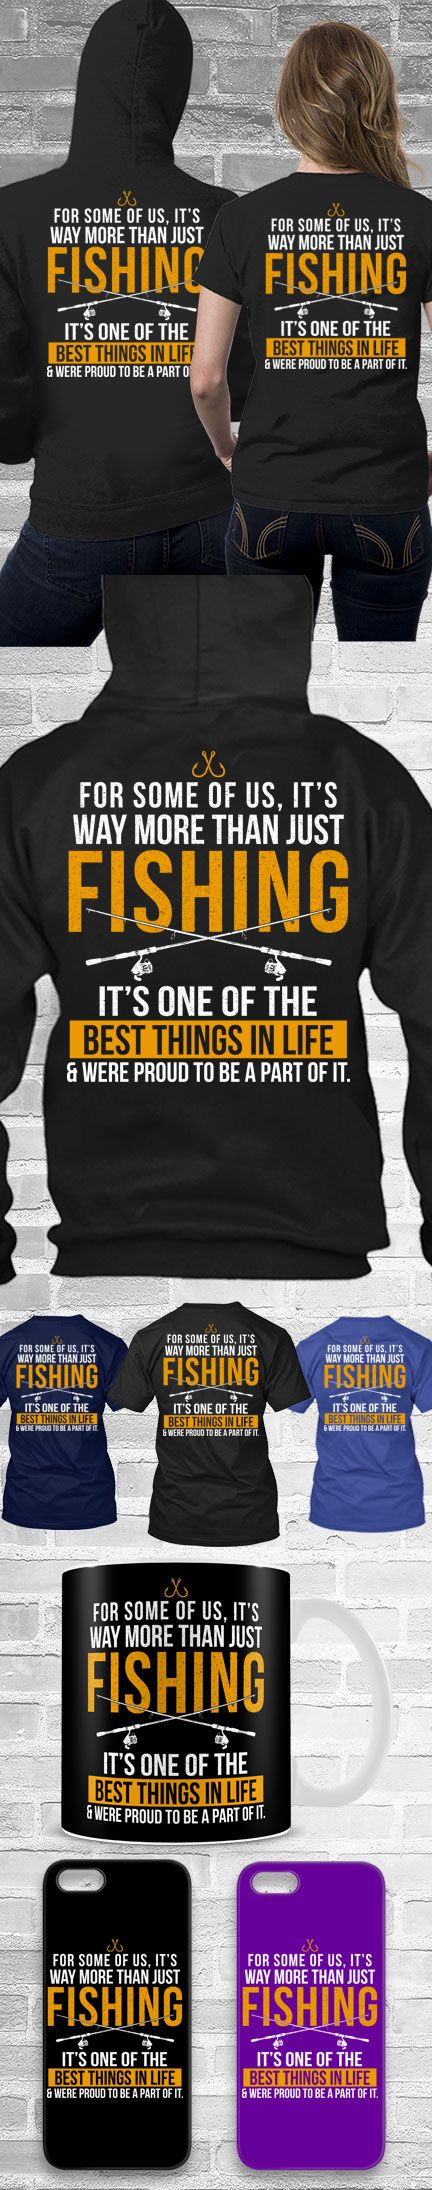 Fishing Is One Of The Best Thing Shirt! Click The Image To Buy It Now or Tag Someone You Want To Buy This For. #fishing